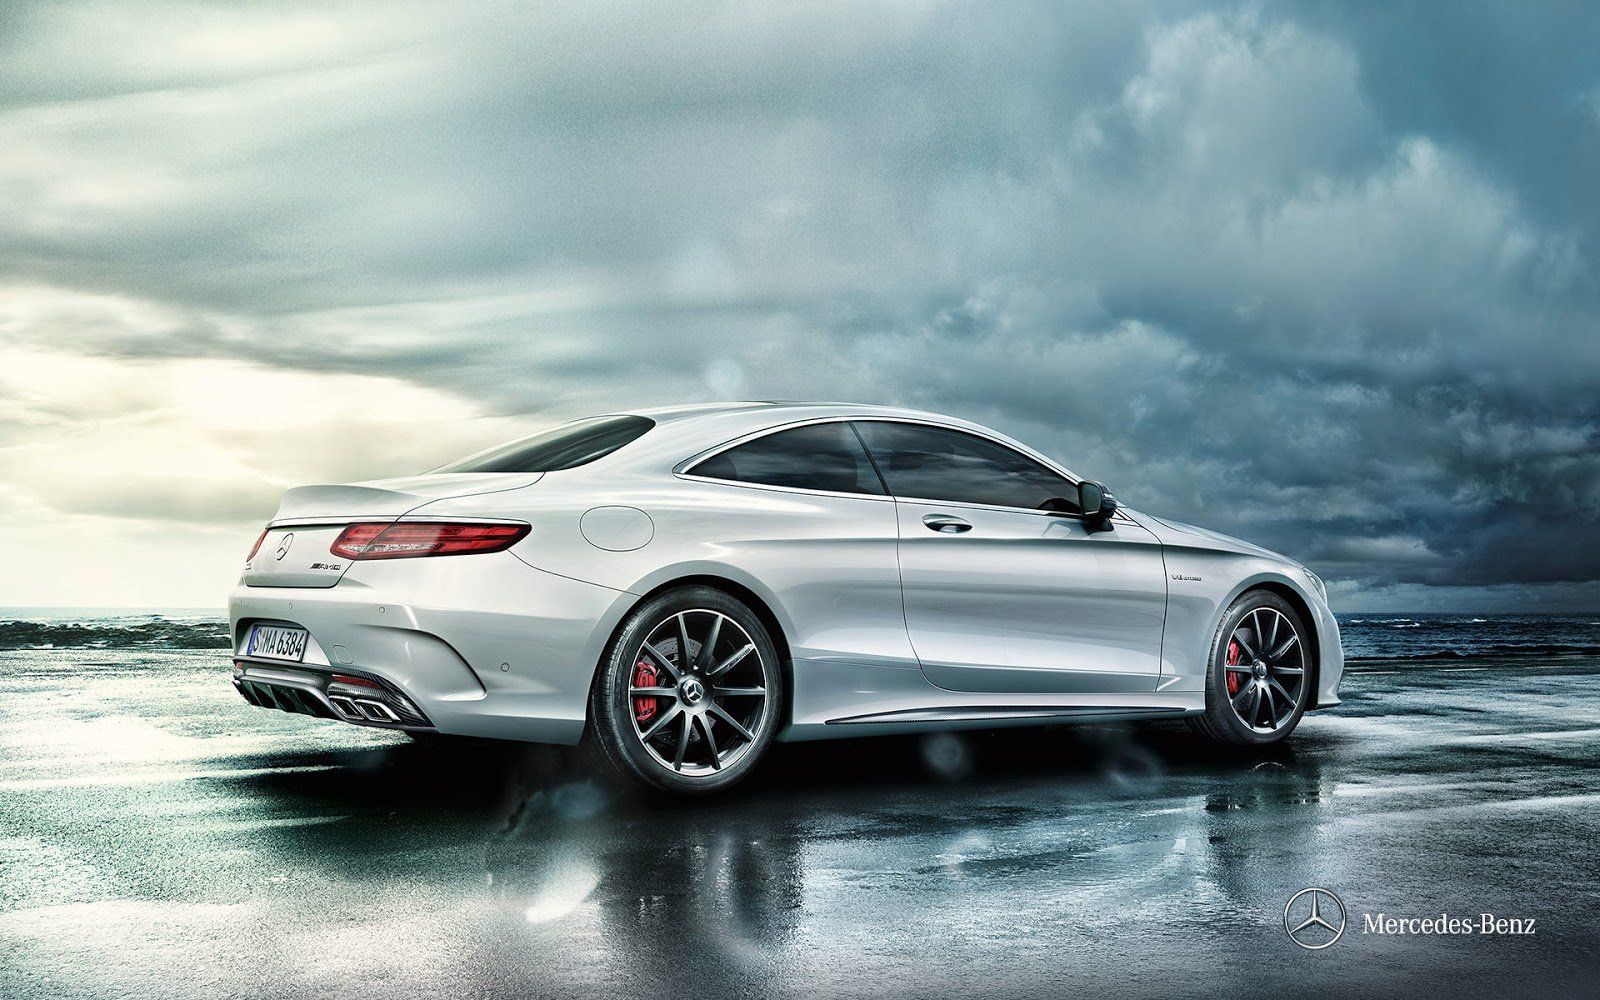 Latest Mercedes S Class Coupe Hd Images Hd Wallpaper With Cars Free Download